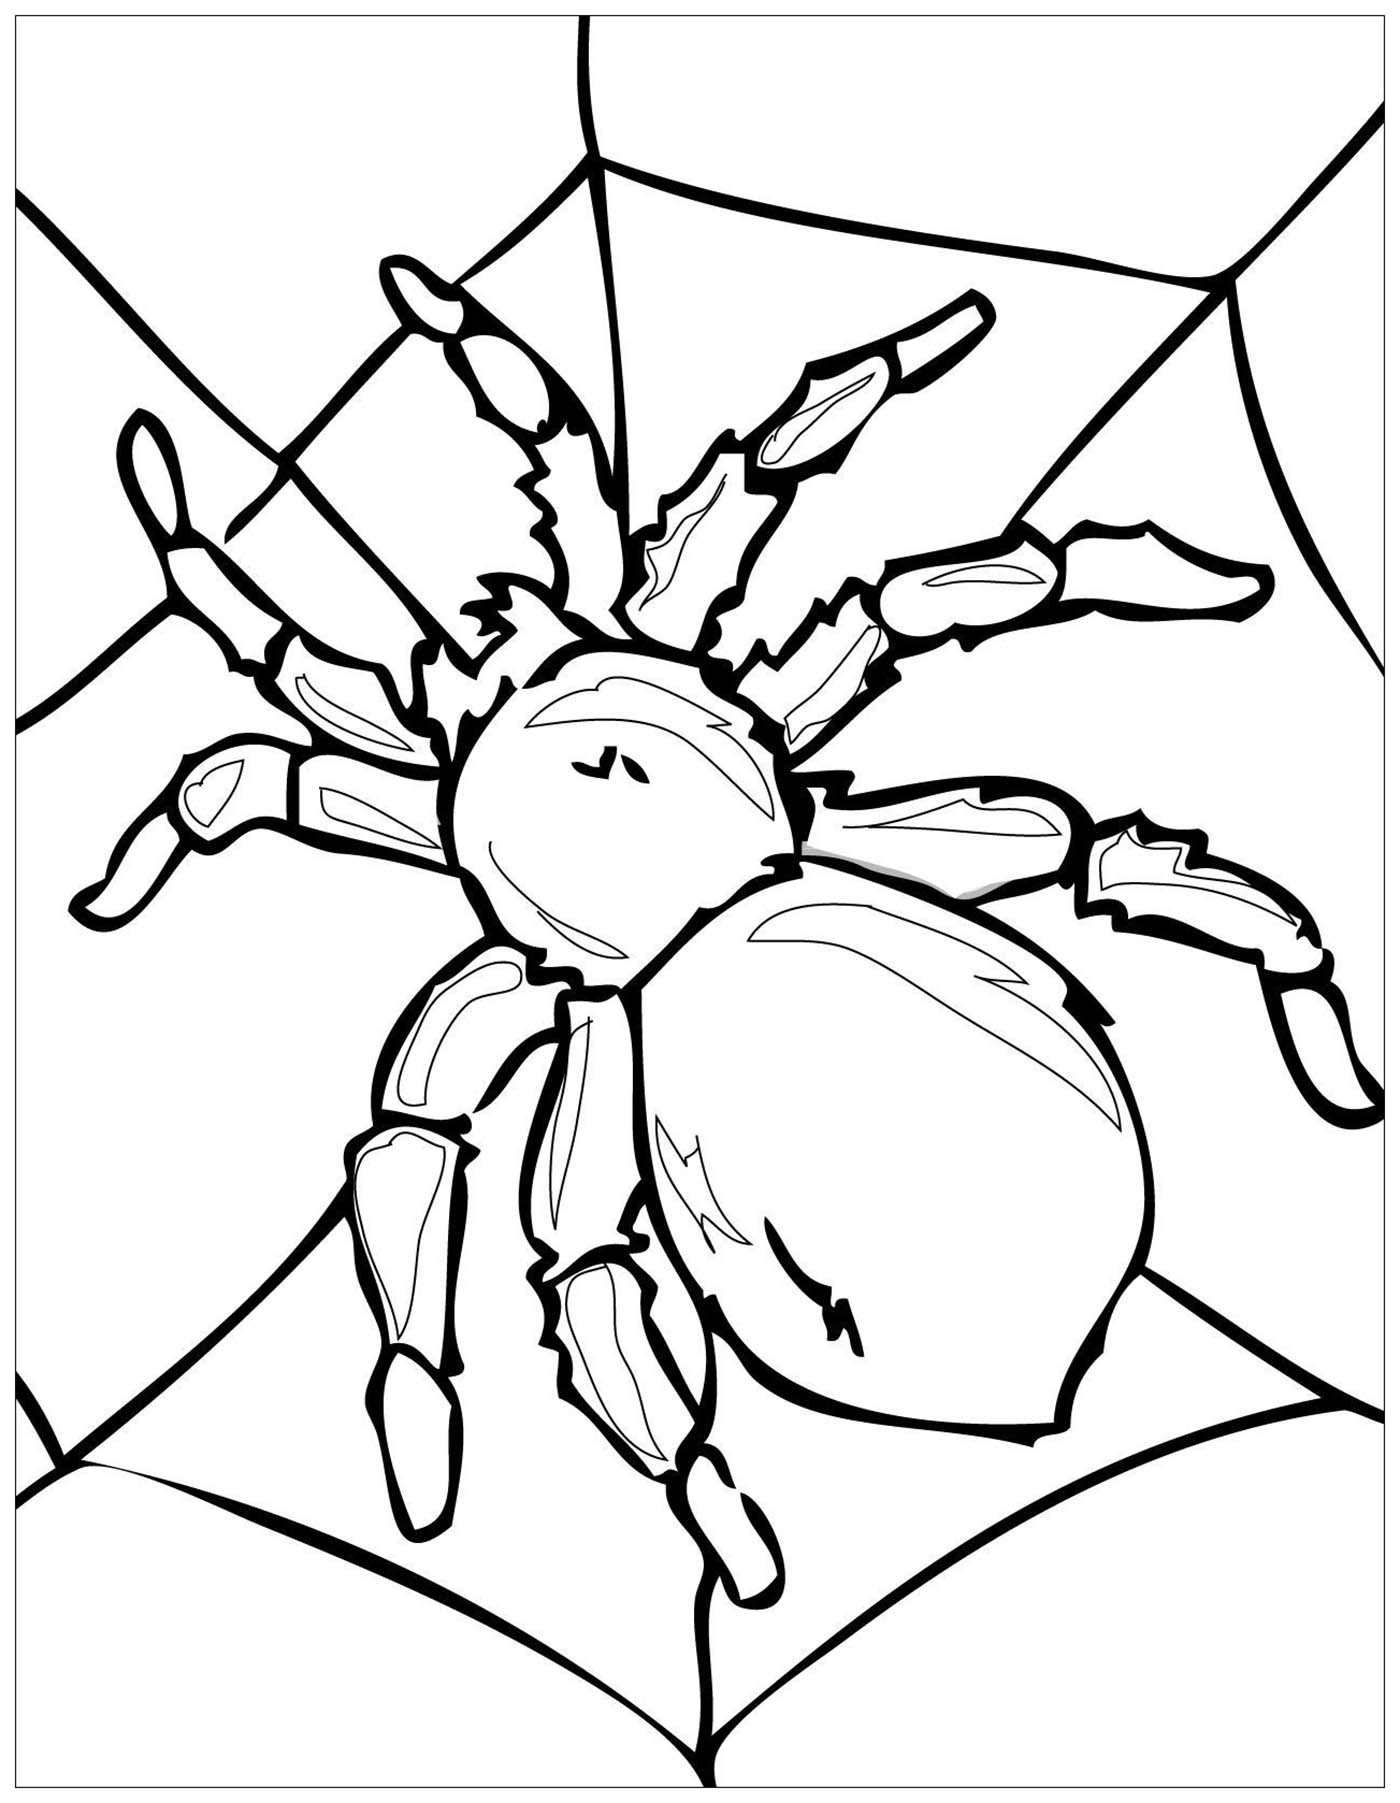 coloring pictures of insects insects to print insects kids coloring pages of pictures coloring insects